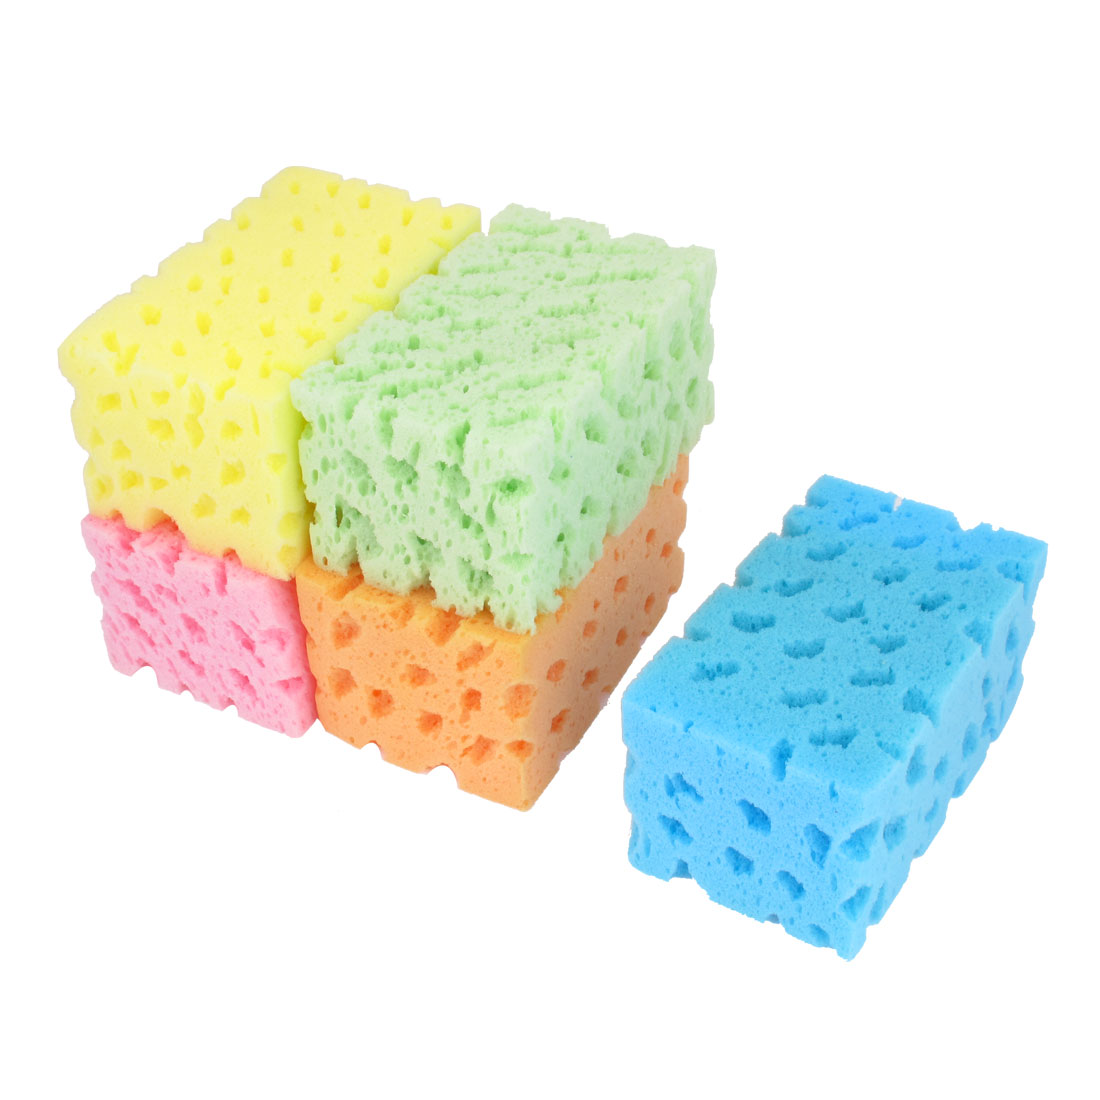 5 Pcs Colorful Bone Shape Cleaning Tool Car Sponge Pad Cushion for Car Wash